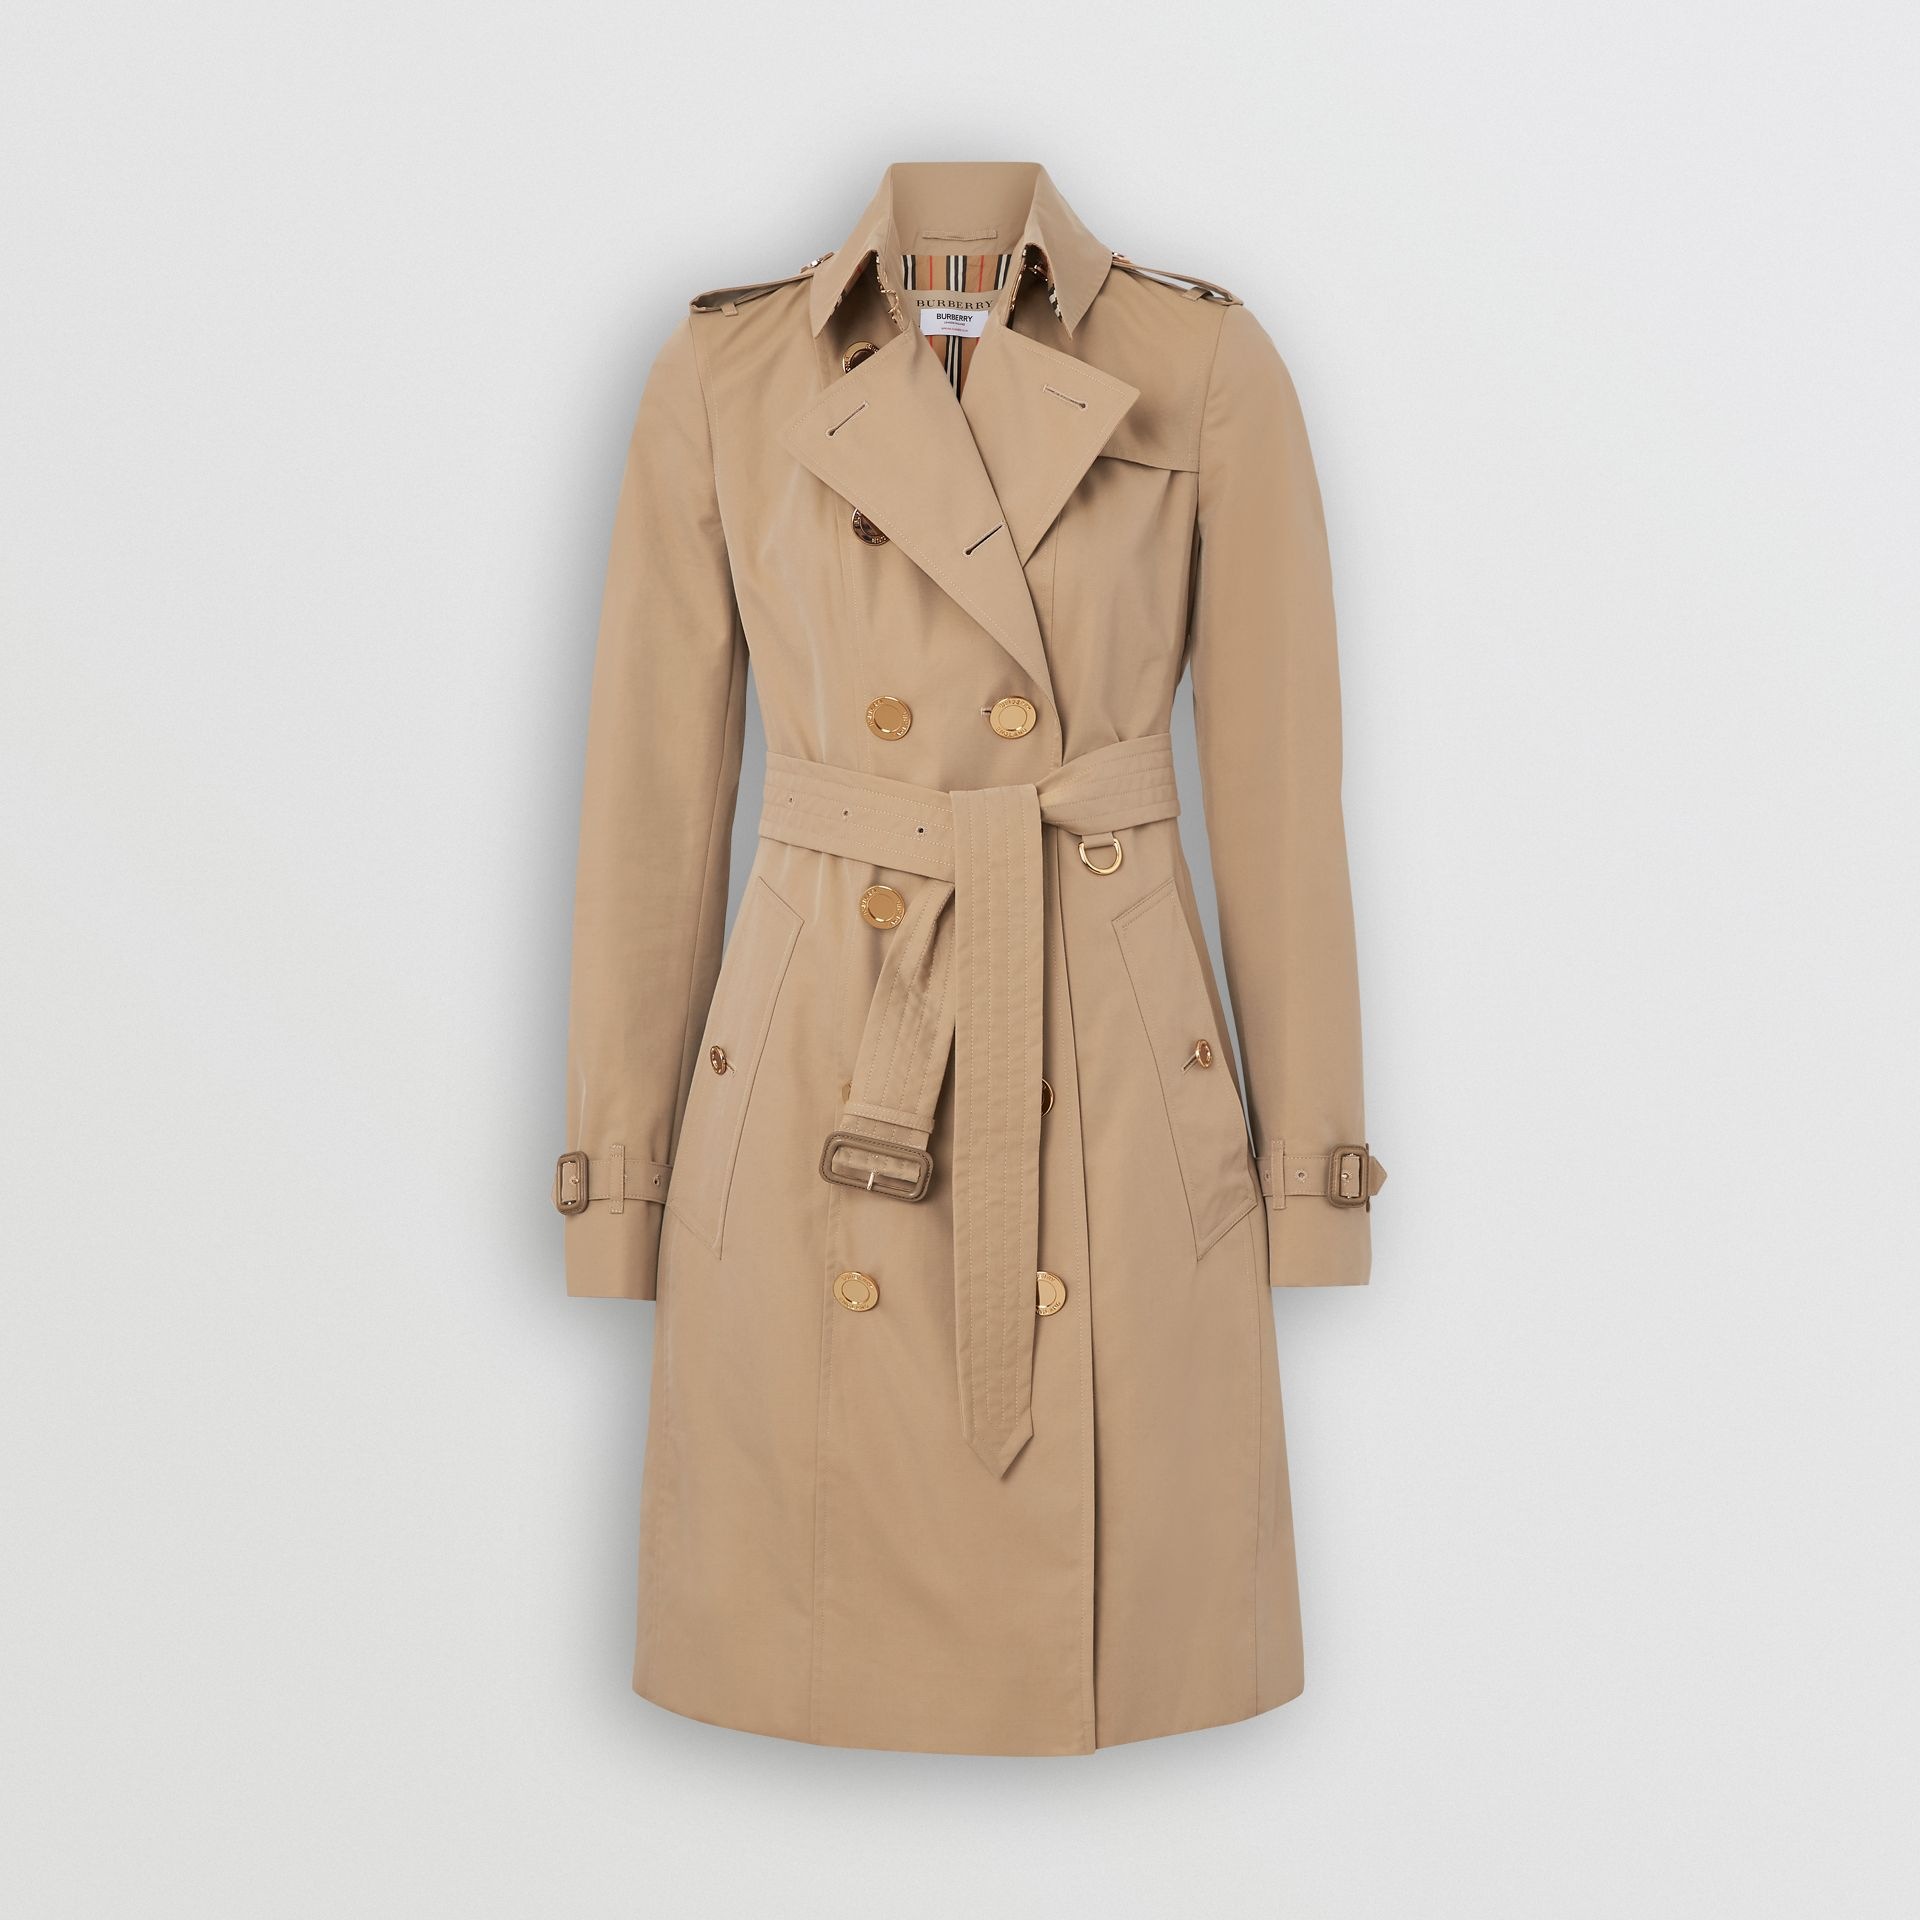 Gold Button Cotton Gabardine Trench Coat in Honey - Women | Burberry - gallery image 3